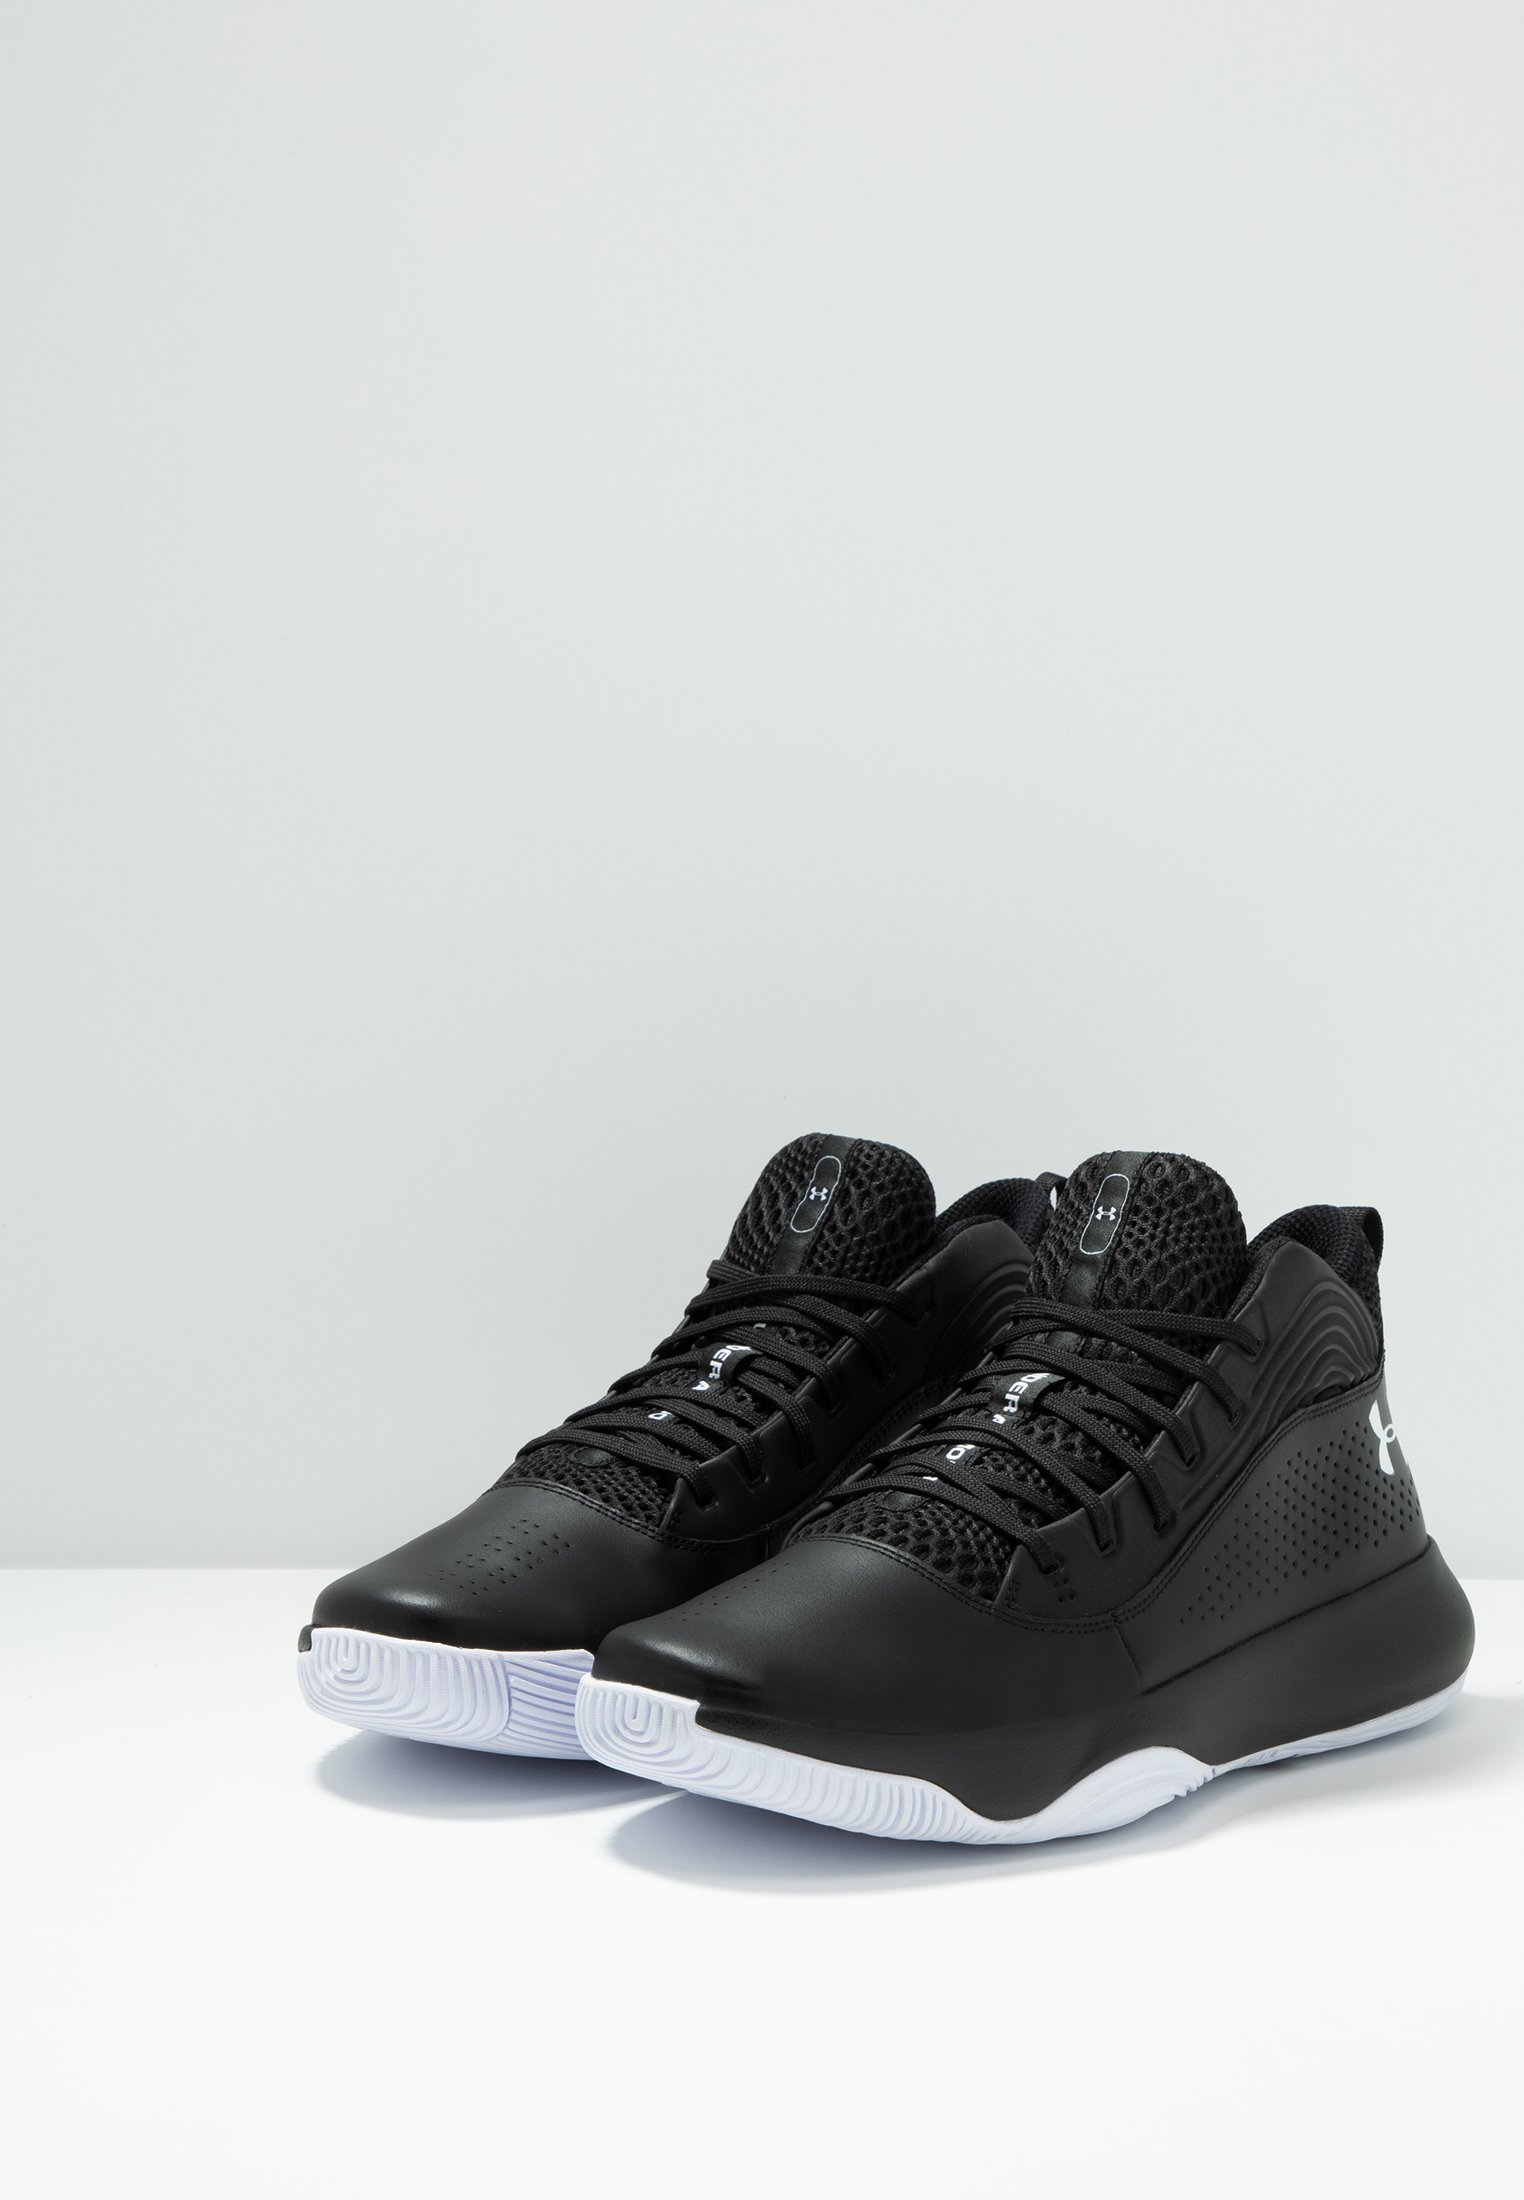 4Chaussures Black Lockdown Basket Under Armour white De zGjqSLUMVp